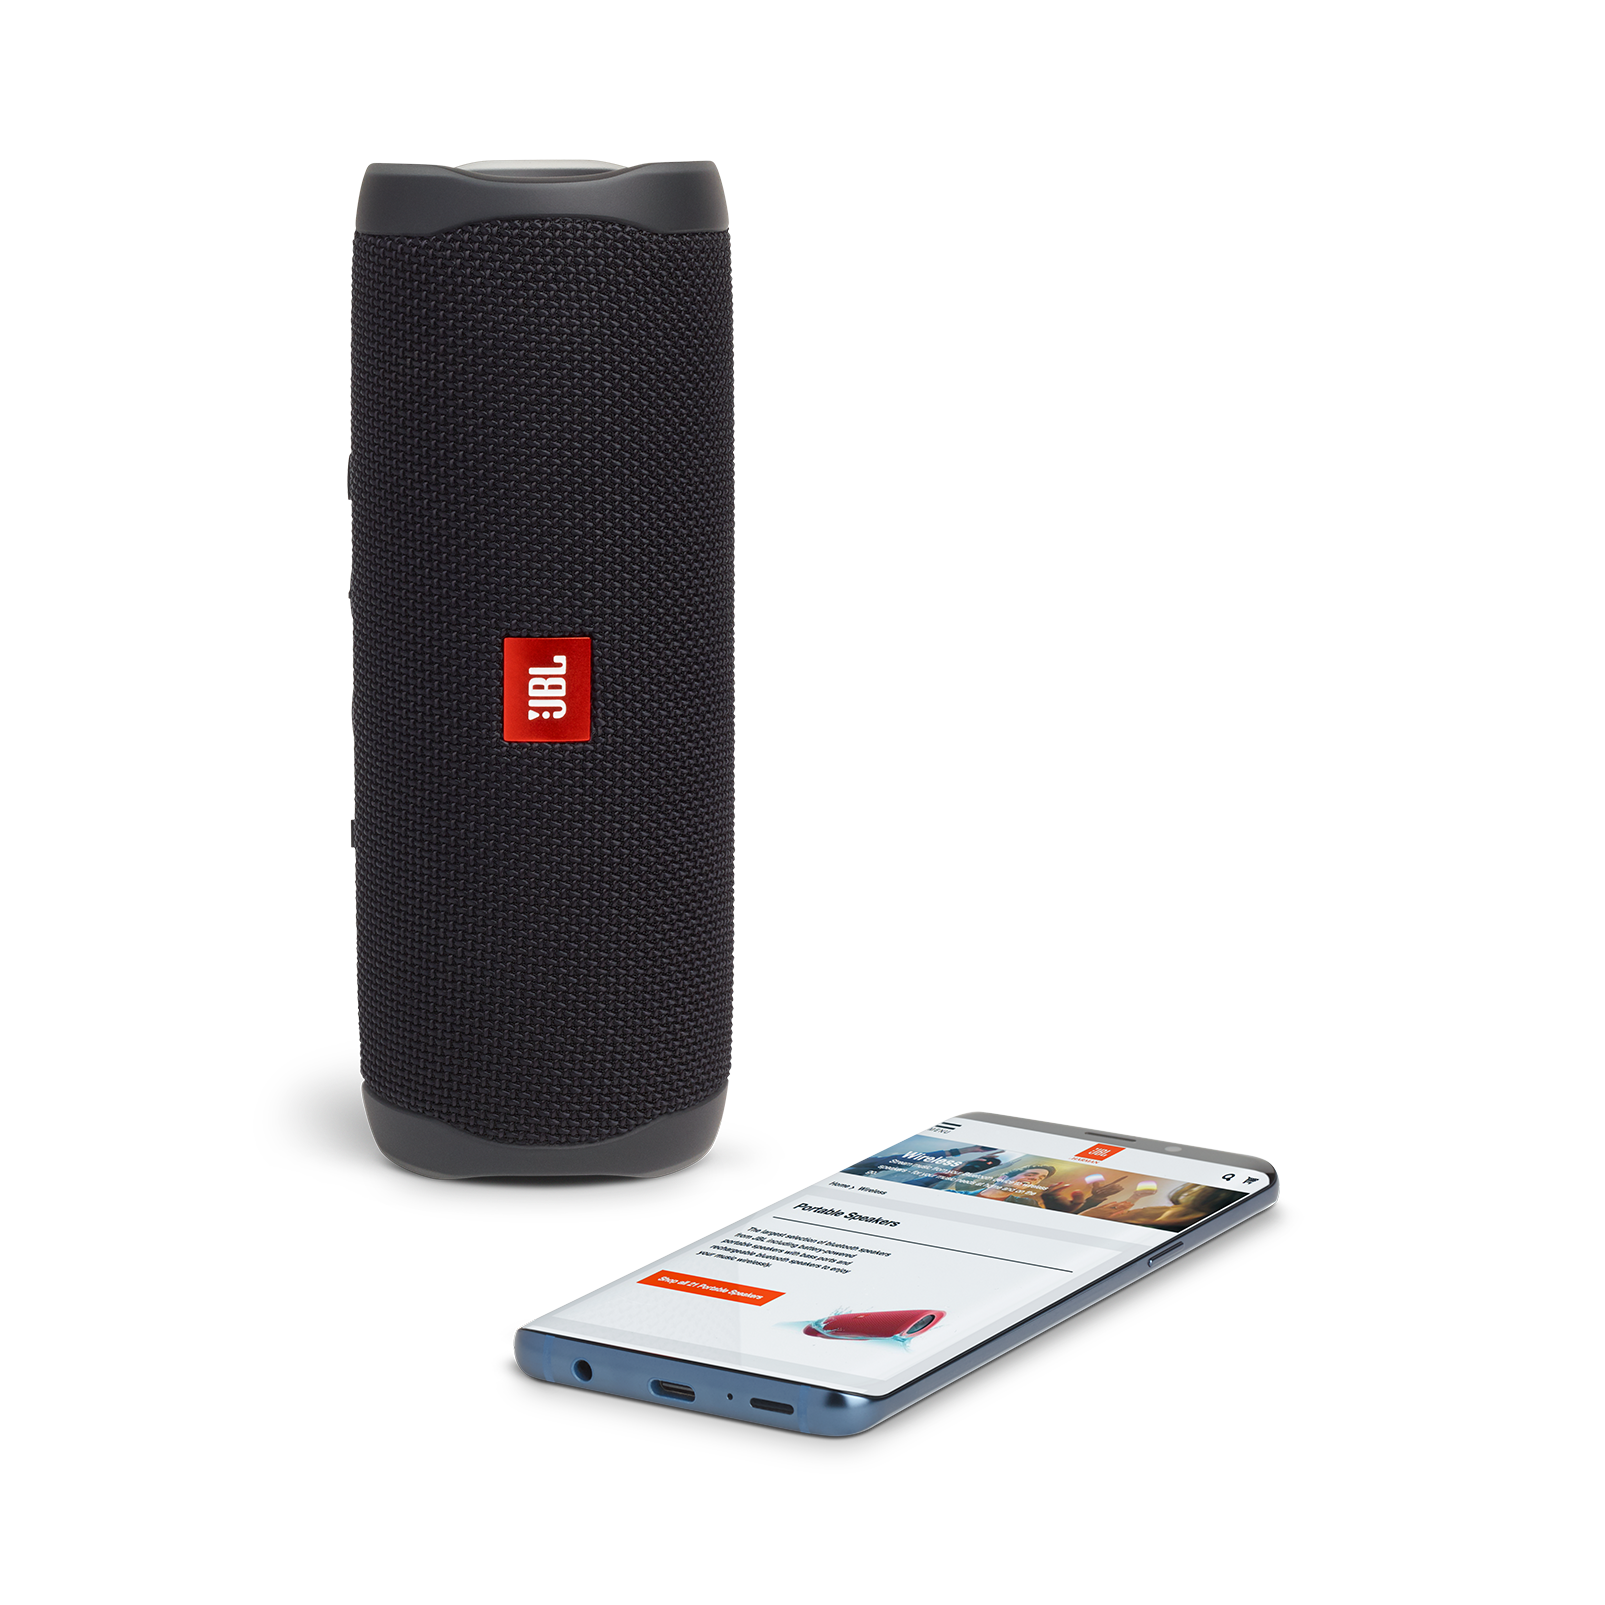 JBL FLIP 5 - Black Matte - Portable Waterproof Speaker - Detailshot 2